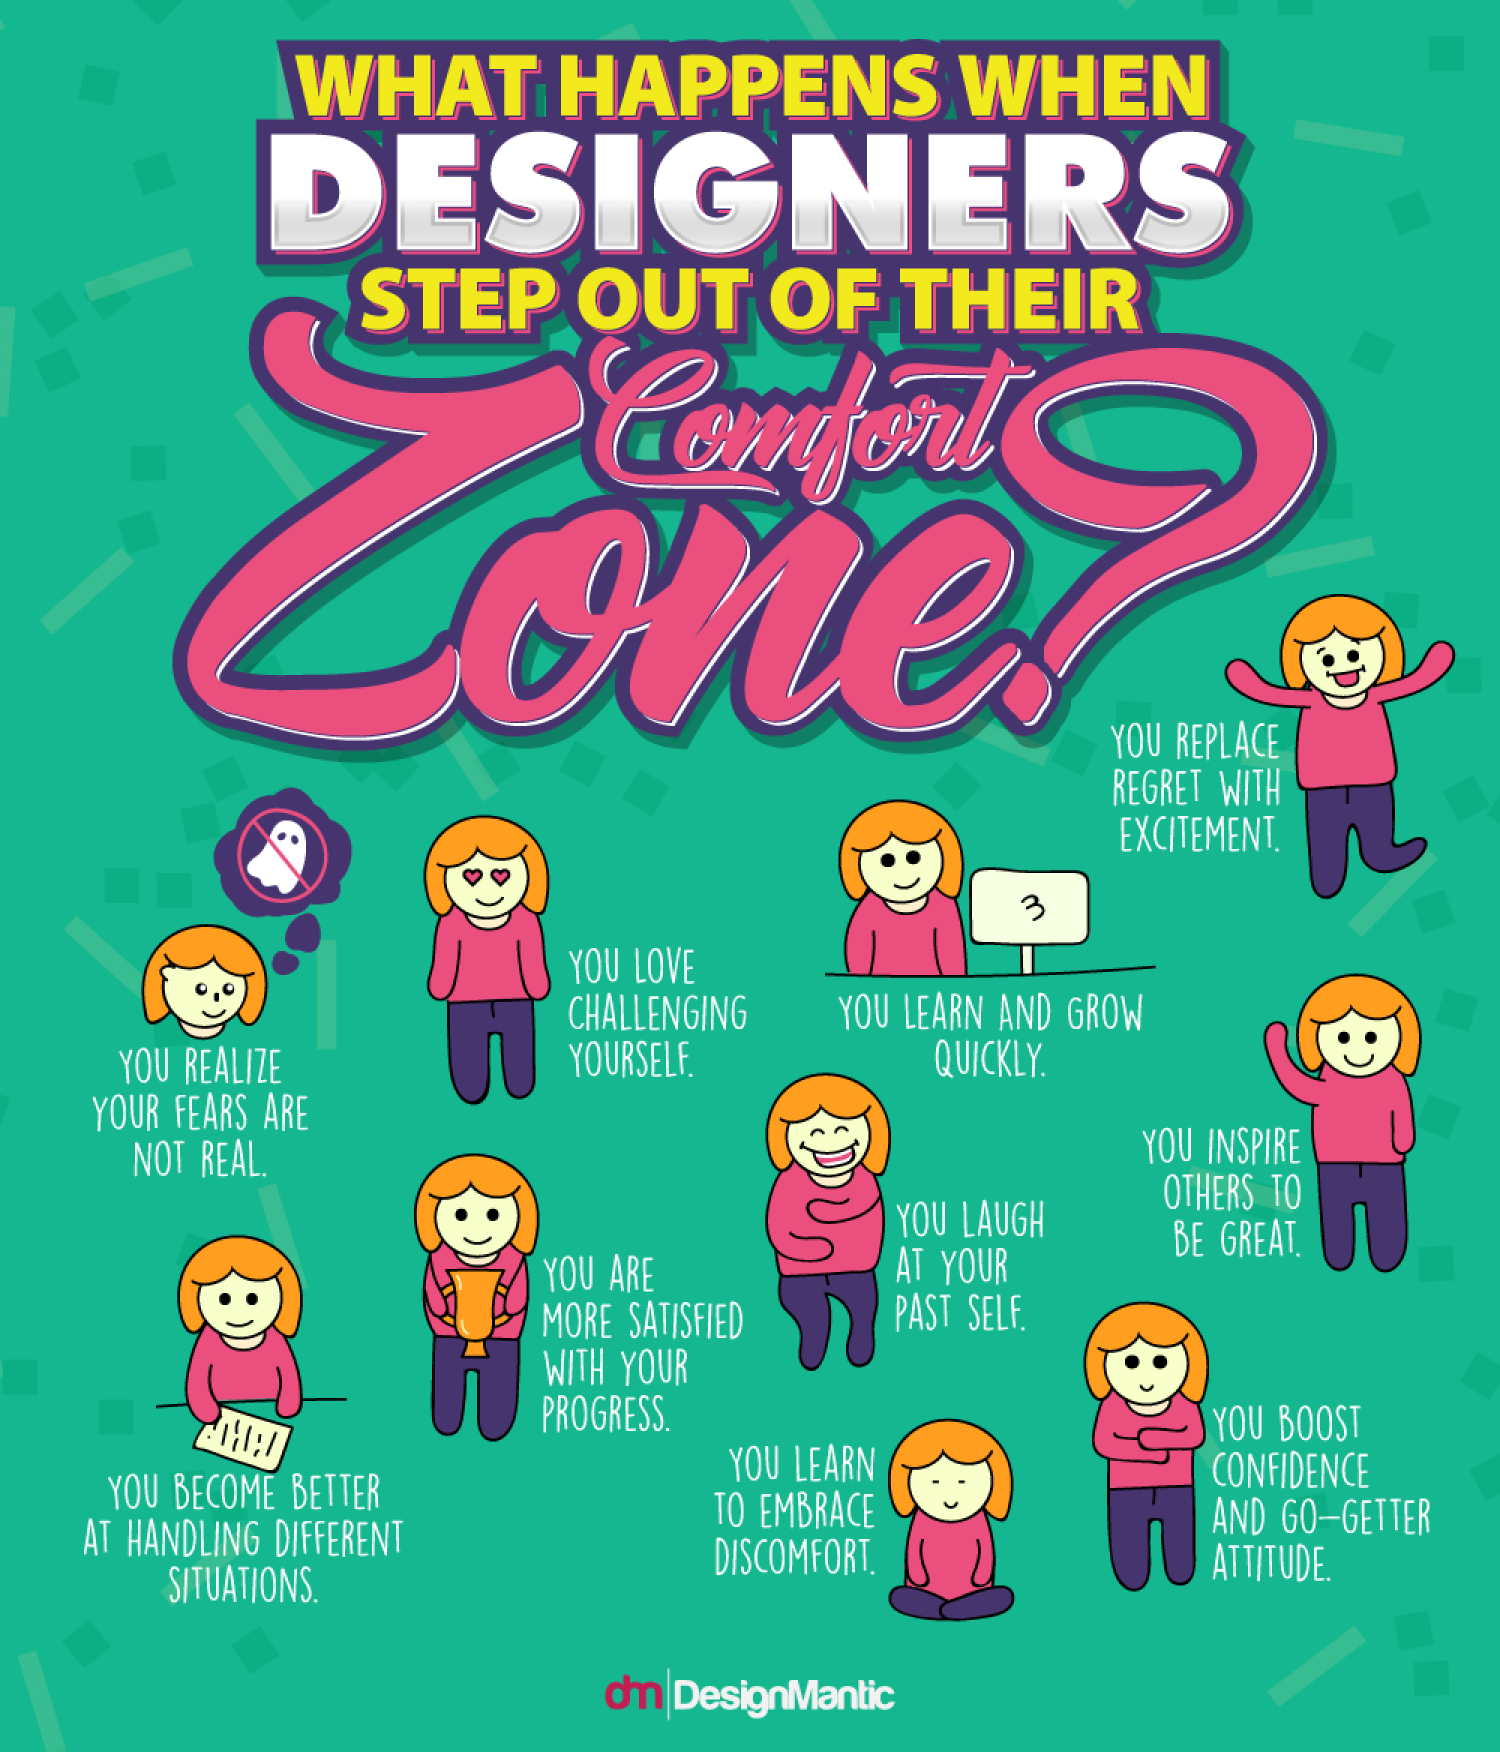 What Happens When Designers Step Out of Their Comfort Zone? Infographic